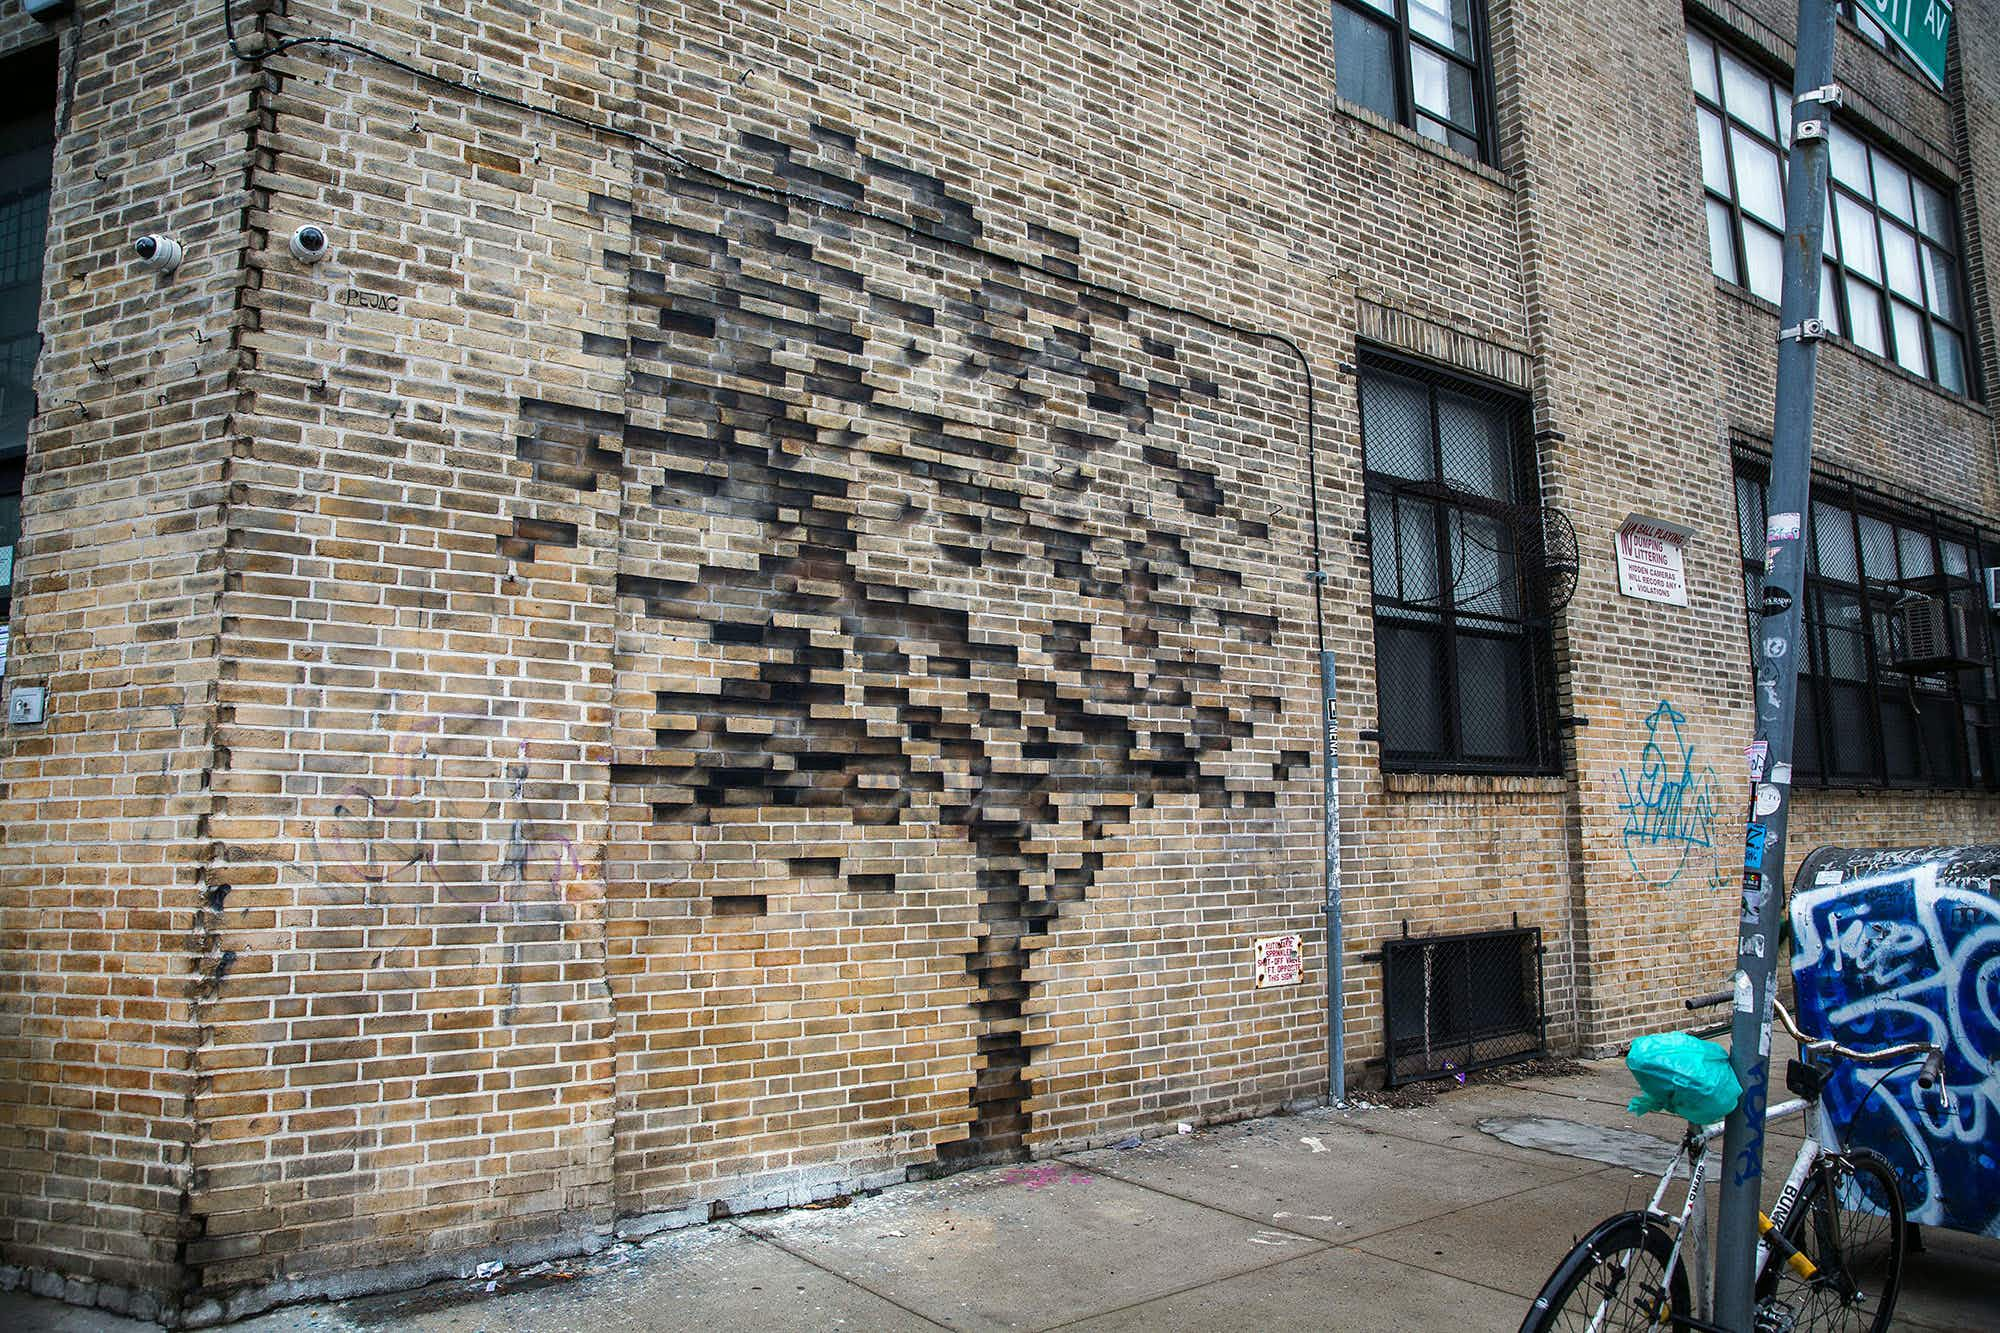 Look out for elusive street artist Pejac's latest work in Brooklyn